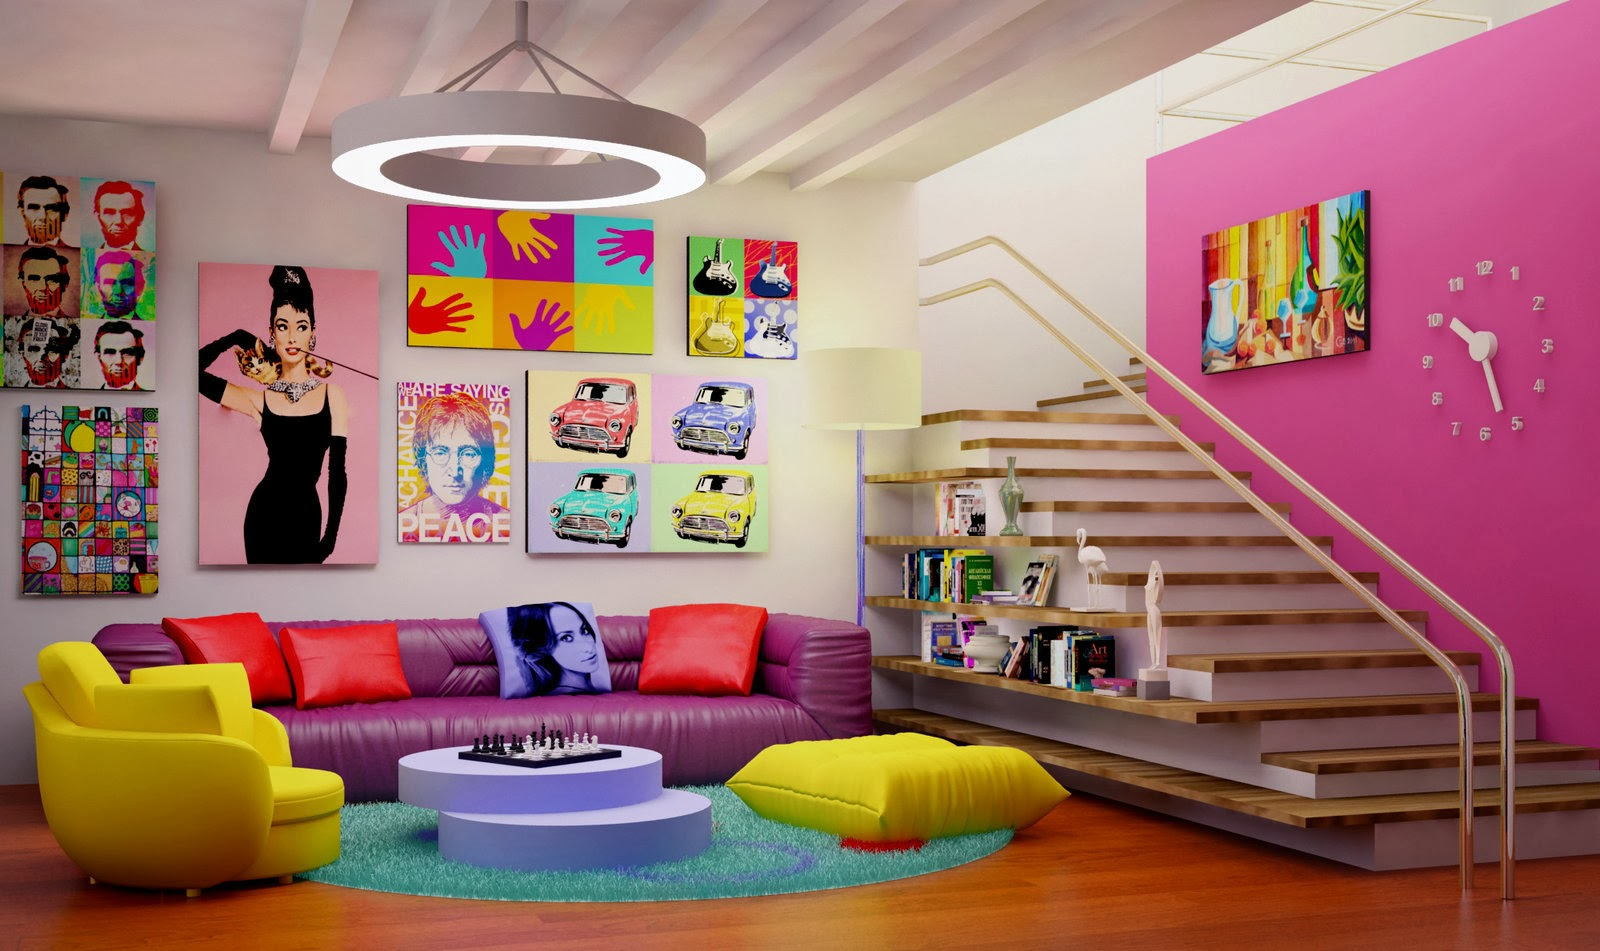 fernanda aprendiz de arquiteta o estilo pop art decora o com irrever ncia. Black Bedroom Furniture Sets. Home Design Ideas